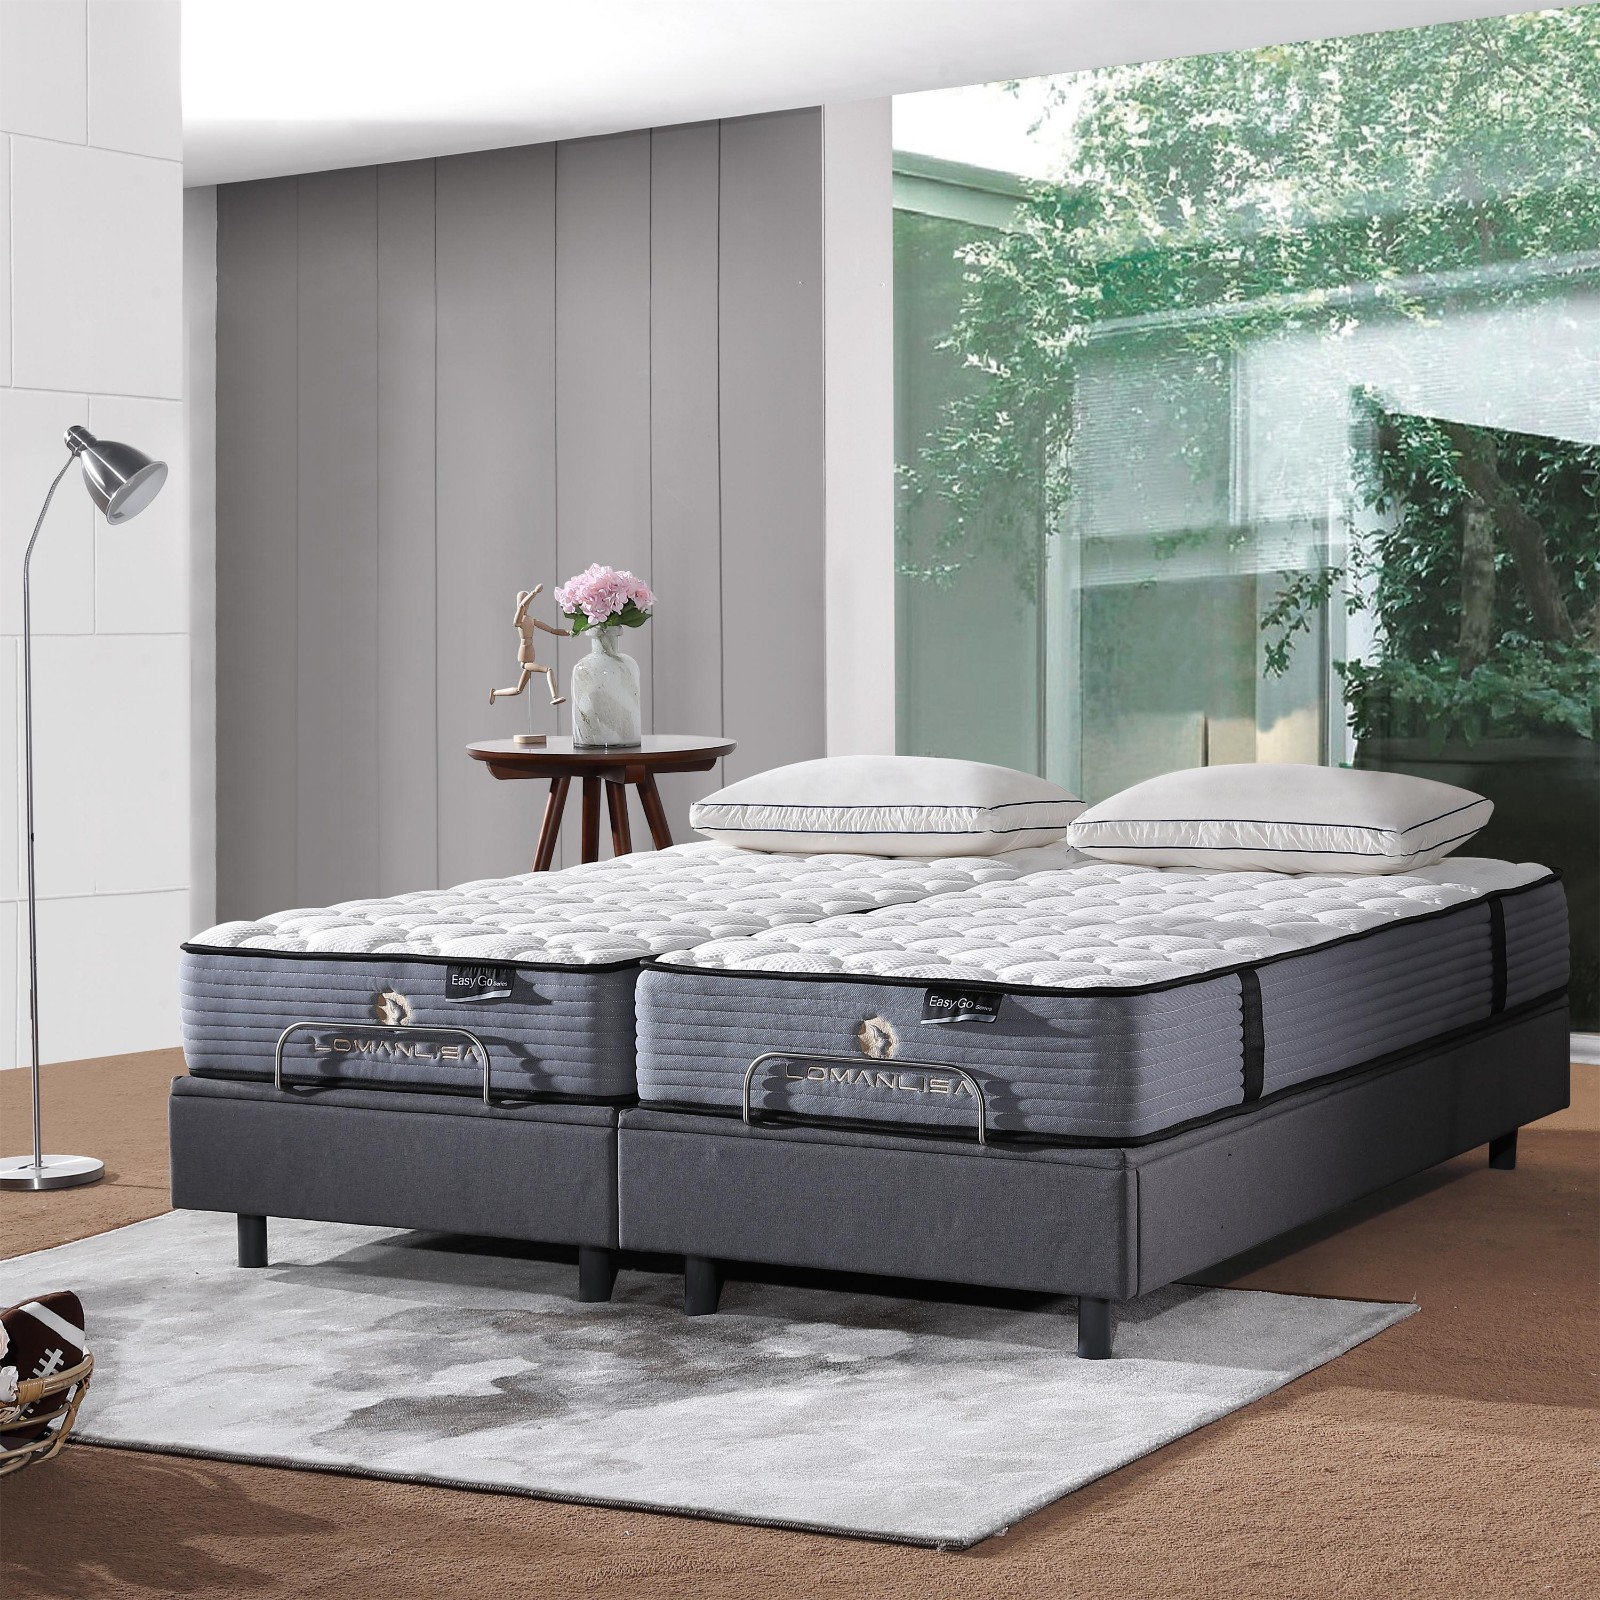 popular eclipse mattress series Comfortable Series delivered easily-11